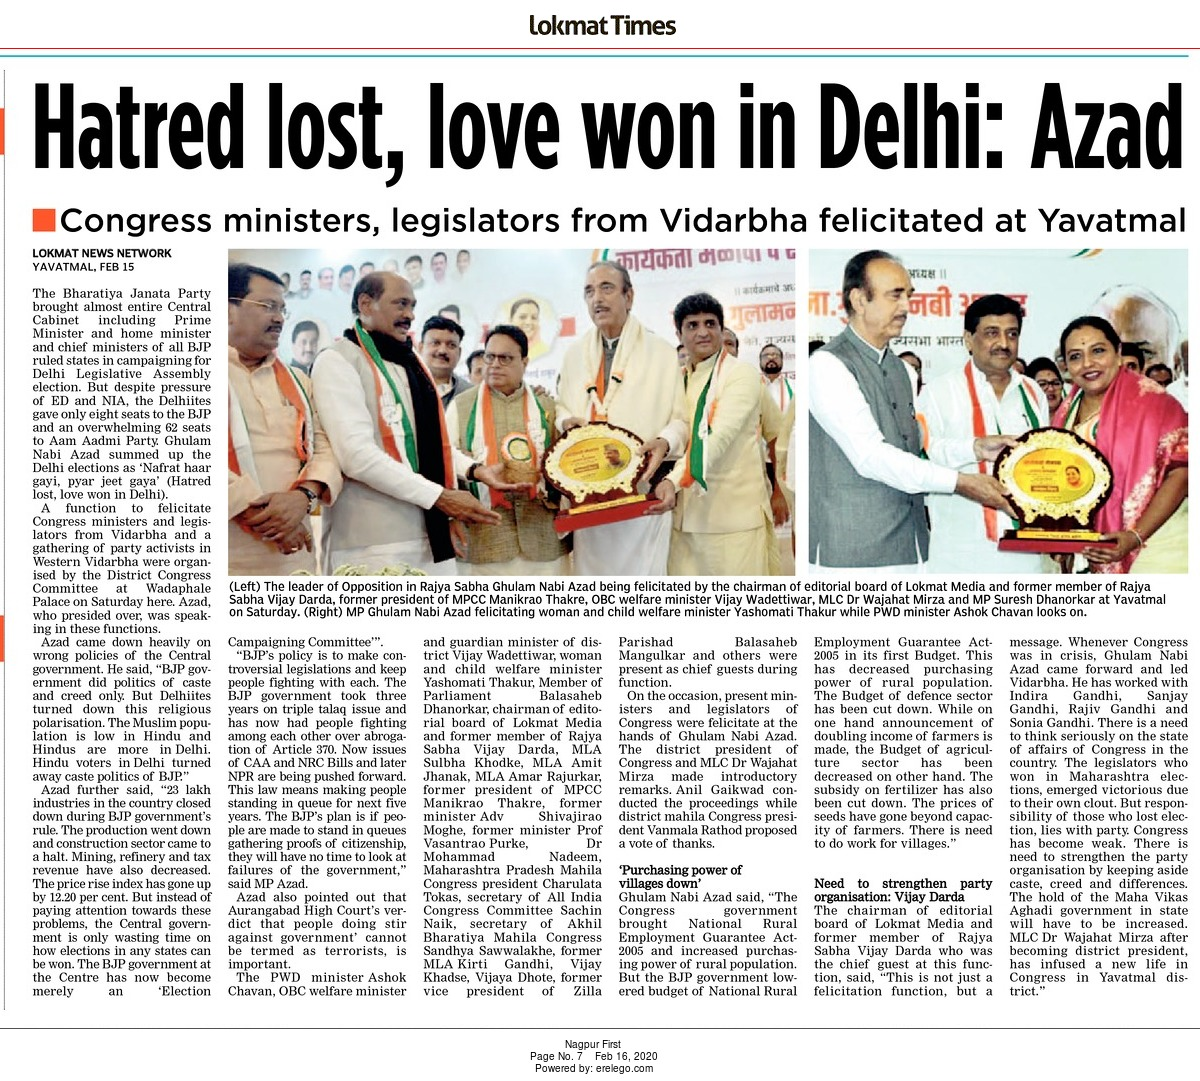 Hatred lost, love won in Delhi: Azad